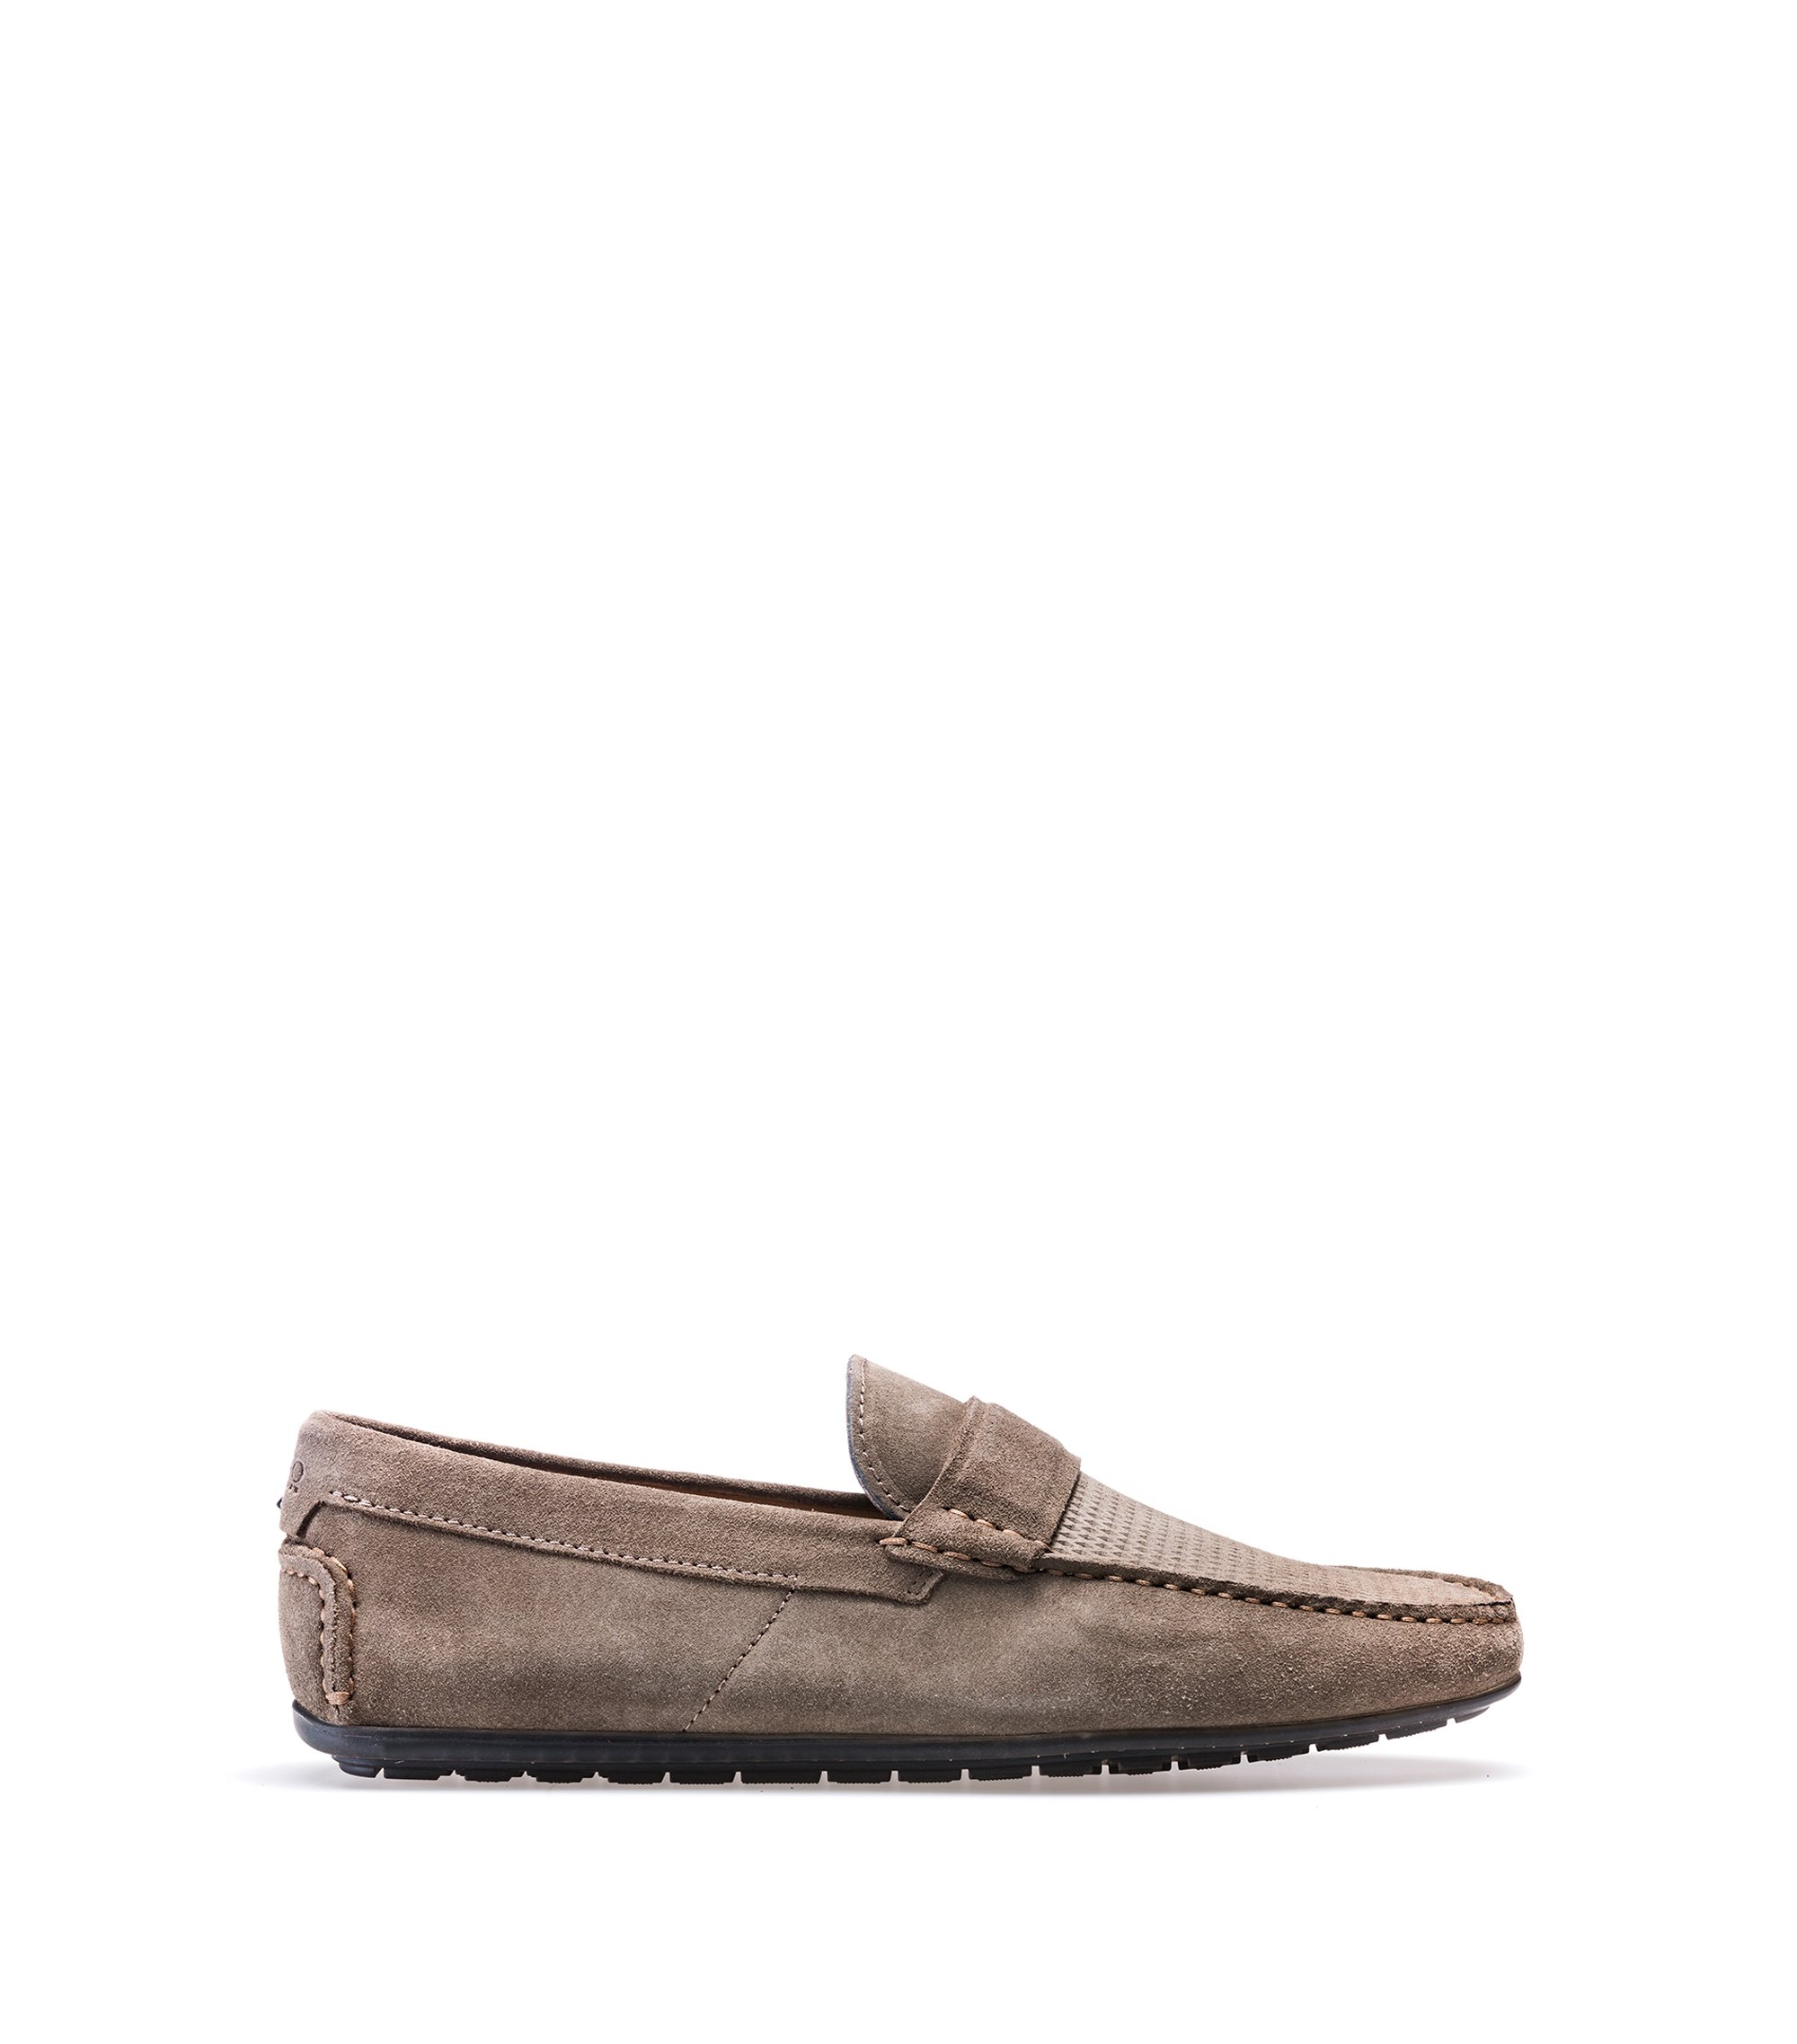 Suede moccasins with textured vamp, Khaki